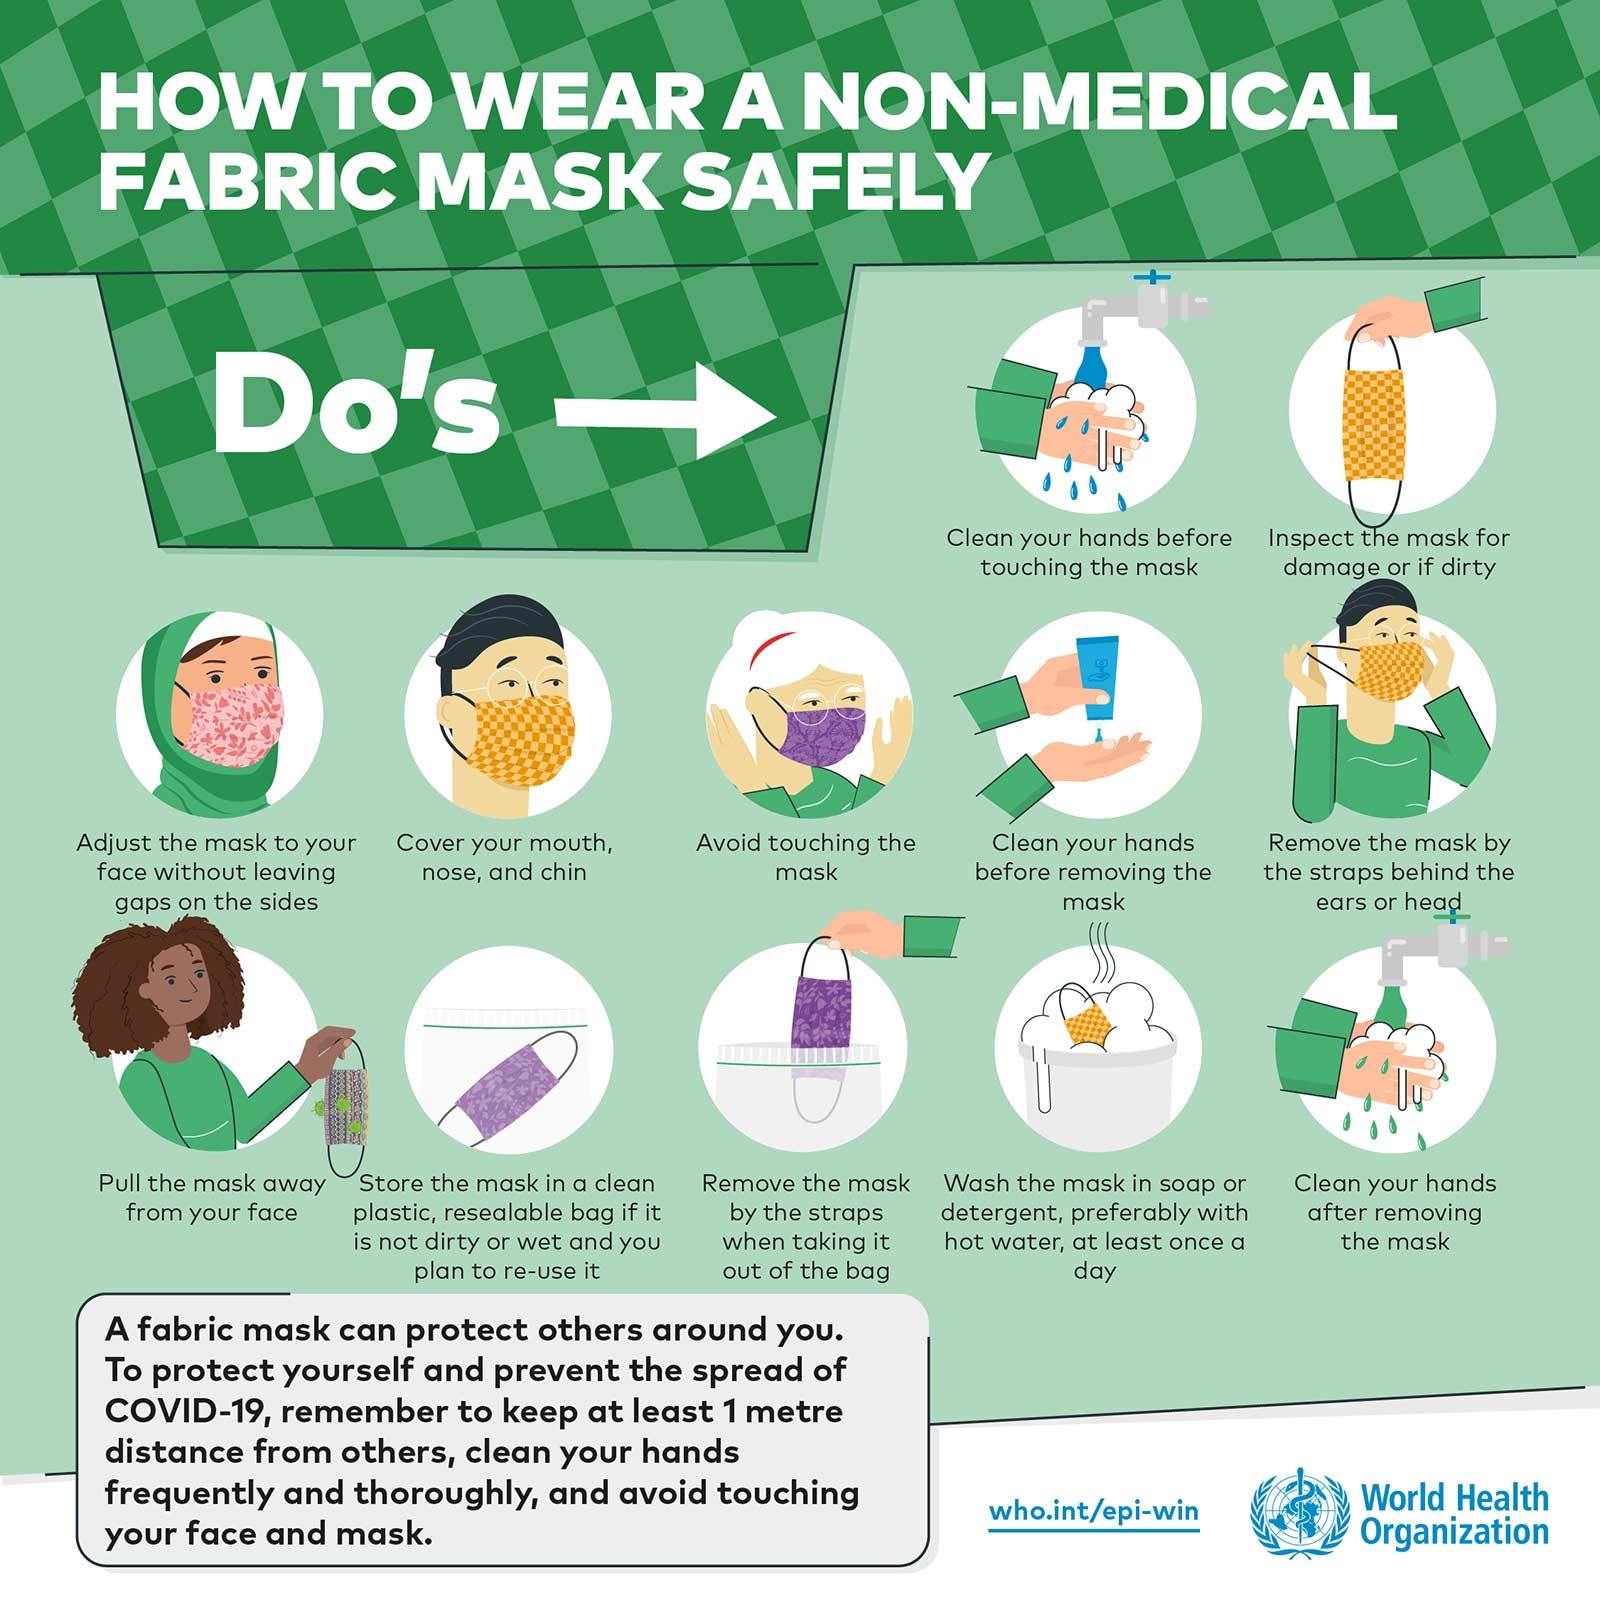 A World Health Organization infographic showing how to wear a non-medical fabric mask safely.